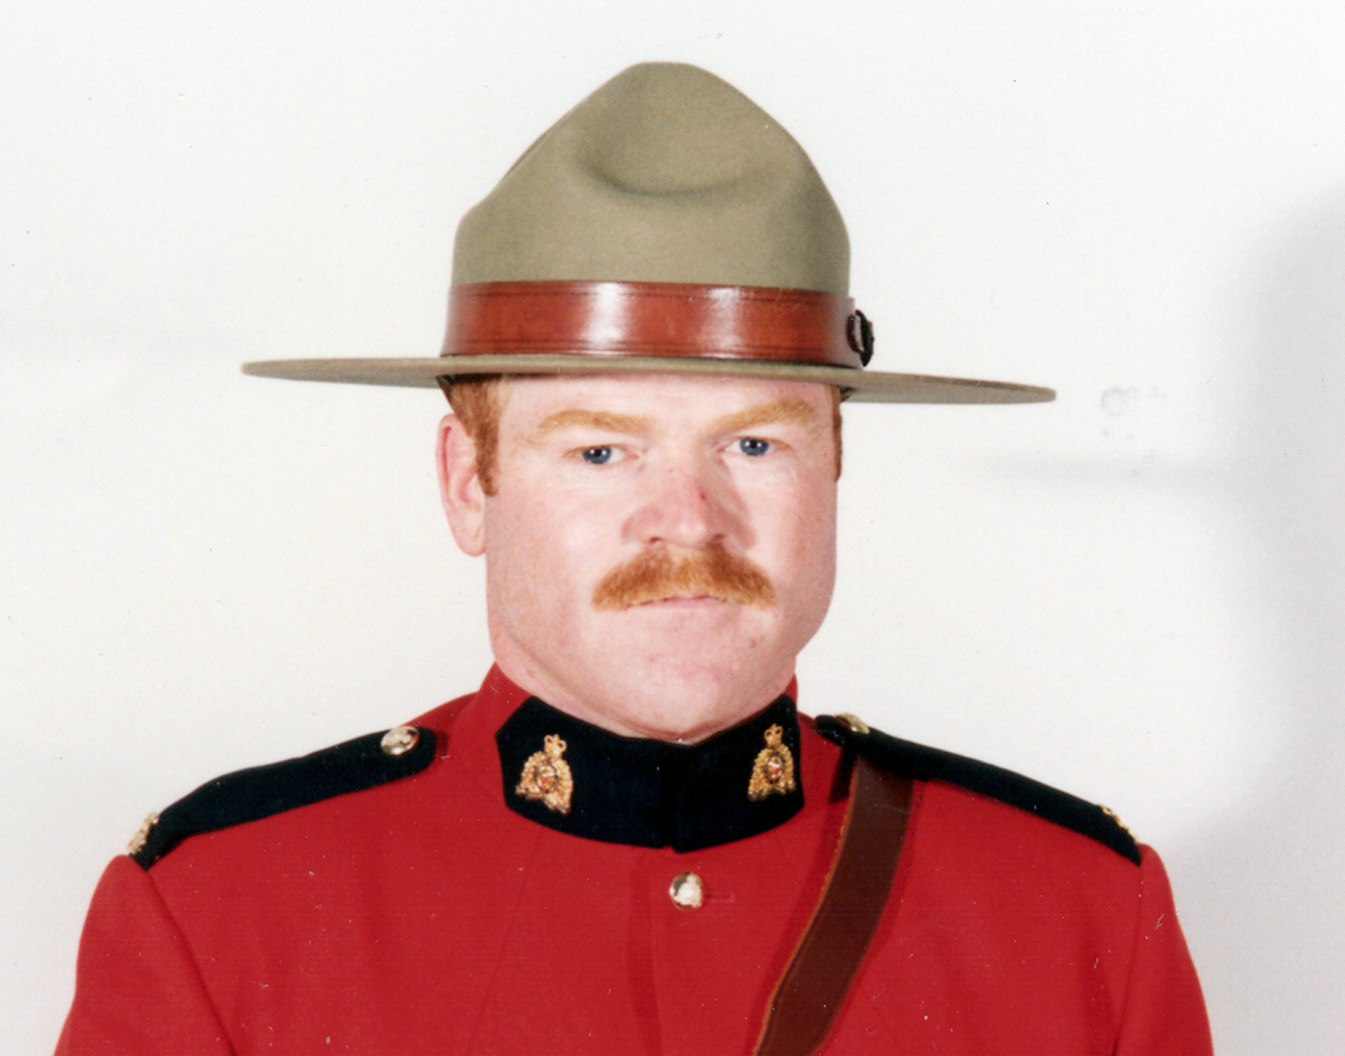 Constable Jurgen Siegfried Seewald– © Her Majesty the Queen in Right of Canada as represented by the Royal Canadian Mounted Police